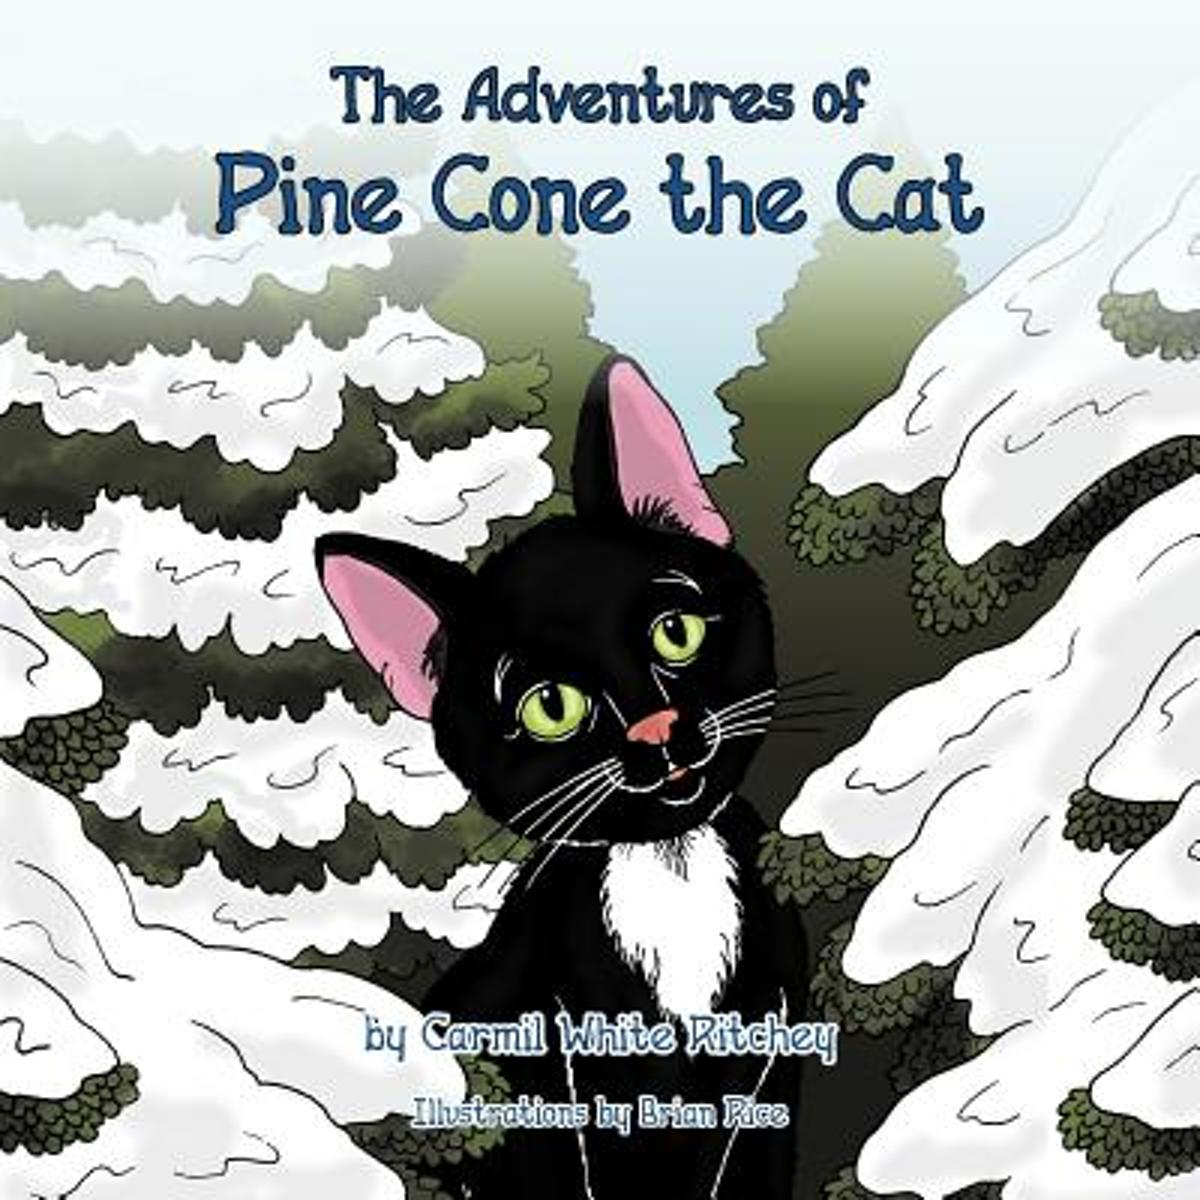 The Adventures of Pine Cone the Cat